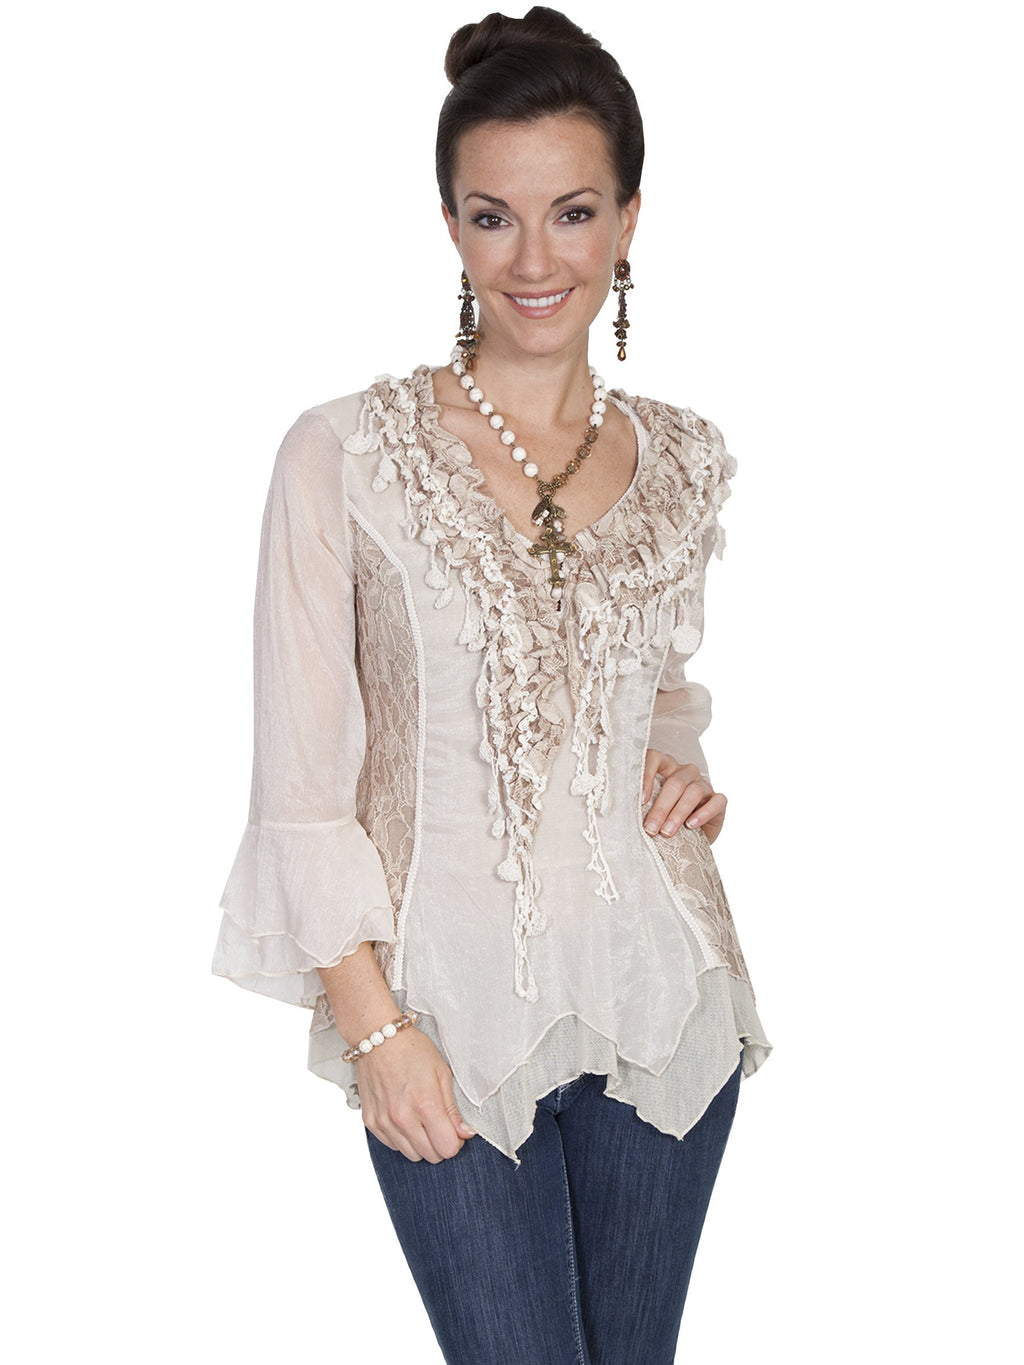 Ladies Western Lace and Ruffle Blouse-HC179 - Blanche's Place